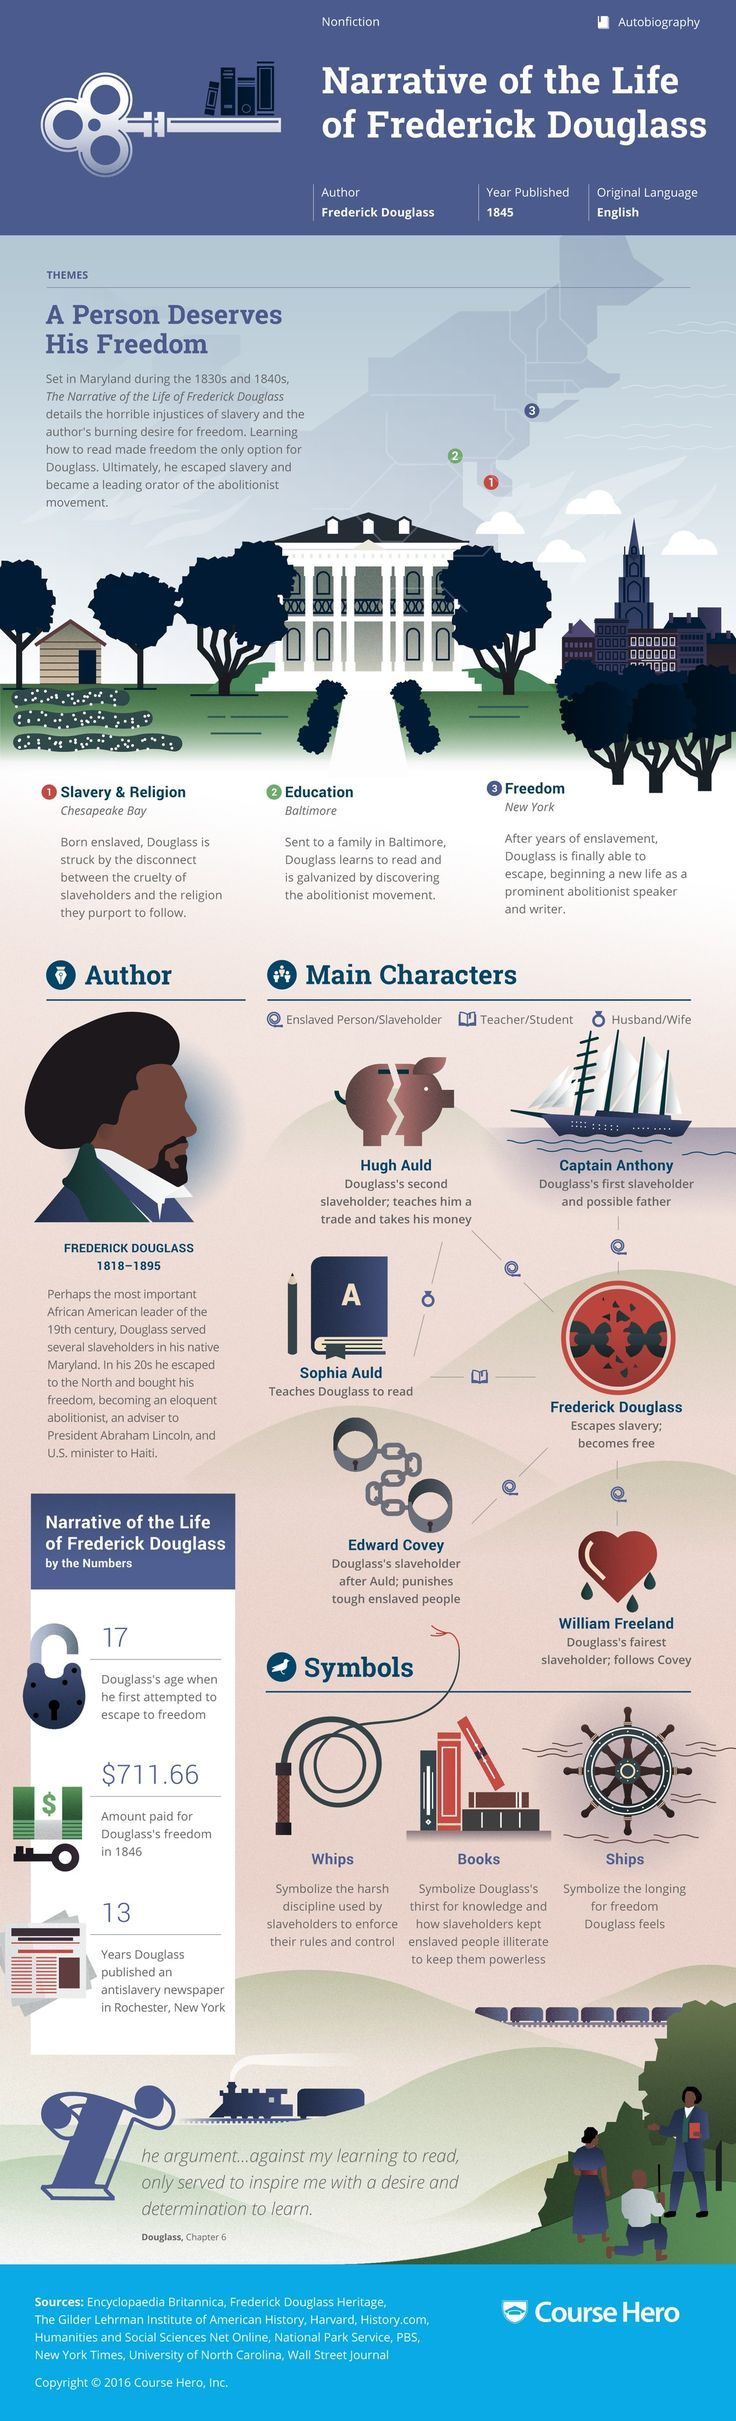 Narrative of the Life of Frederick Douglass Infographic | Course Hero